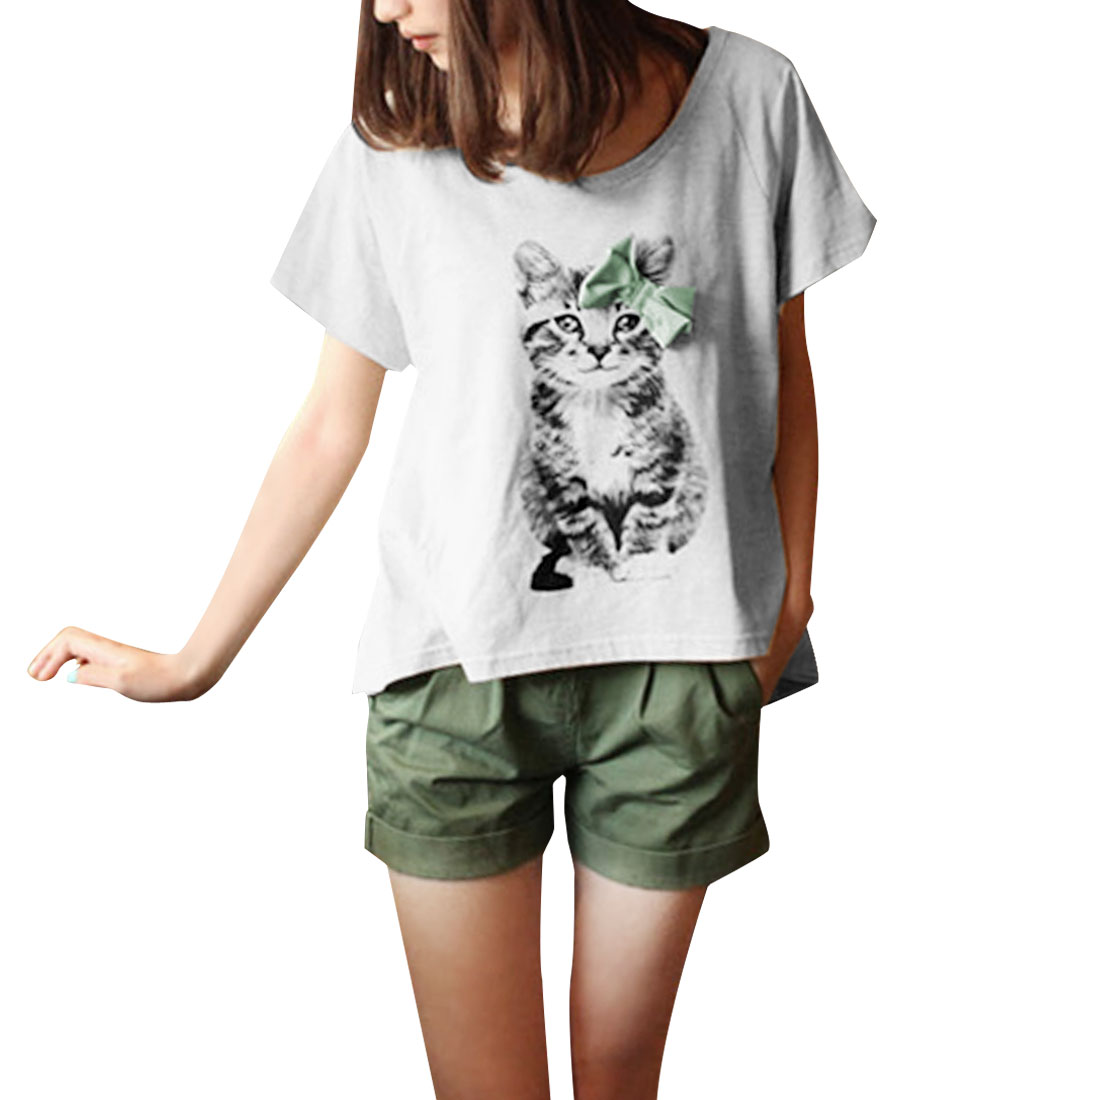 Lady Short Sleeve Bowknot Decor Cat Prints Casual T-Shirt Light Gray S